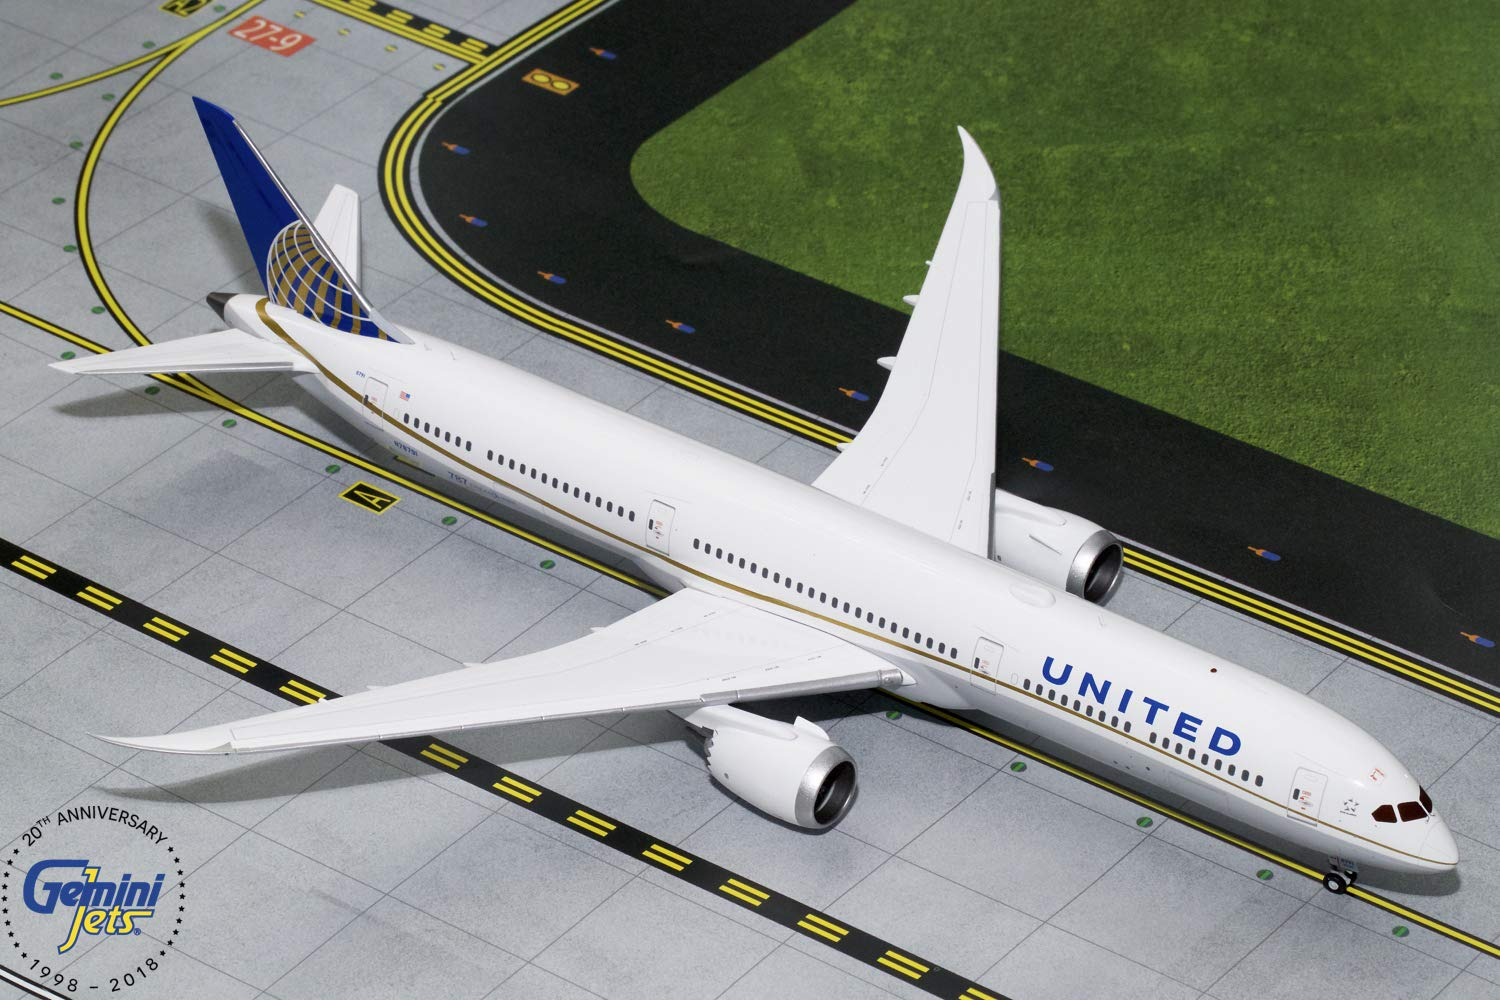 GeminiJets Gemini200 United Airlines B787-10 Dreamliner 1:200 Scale Diecast Model Airplane